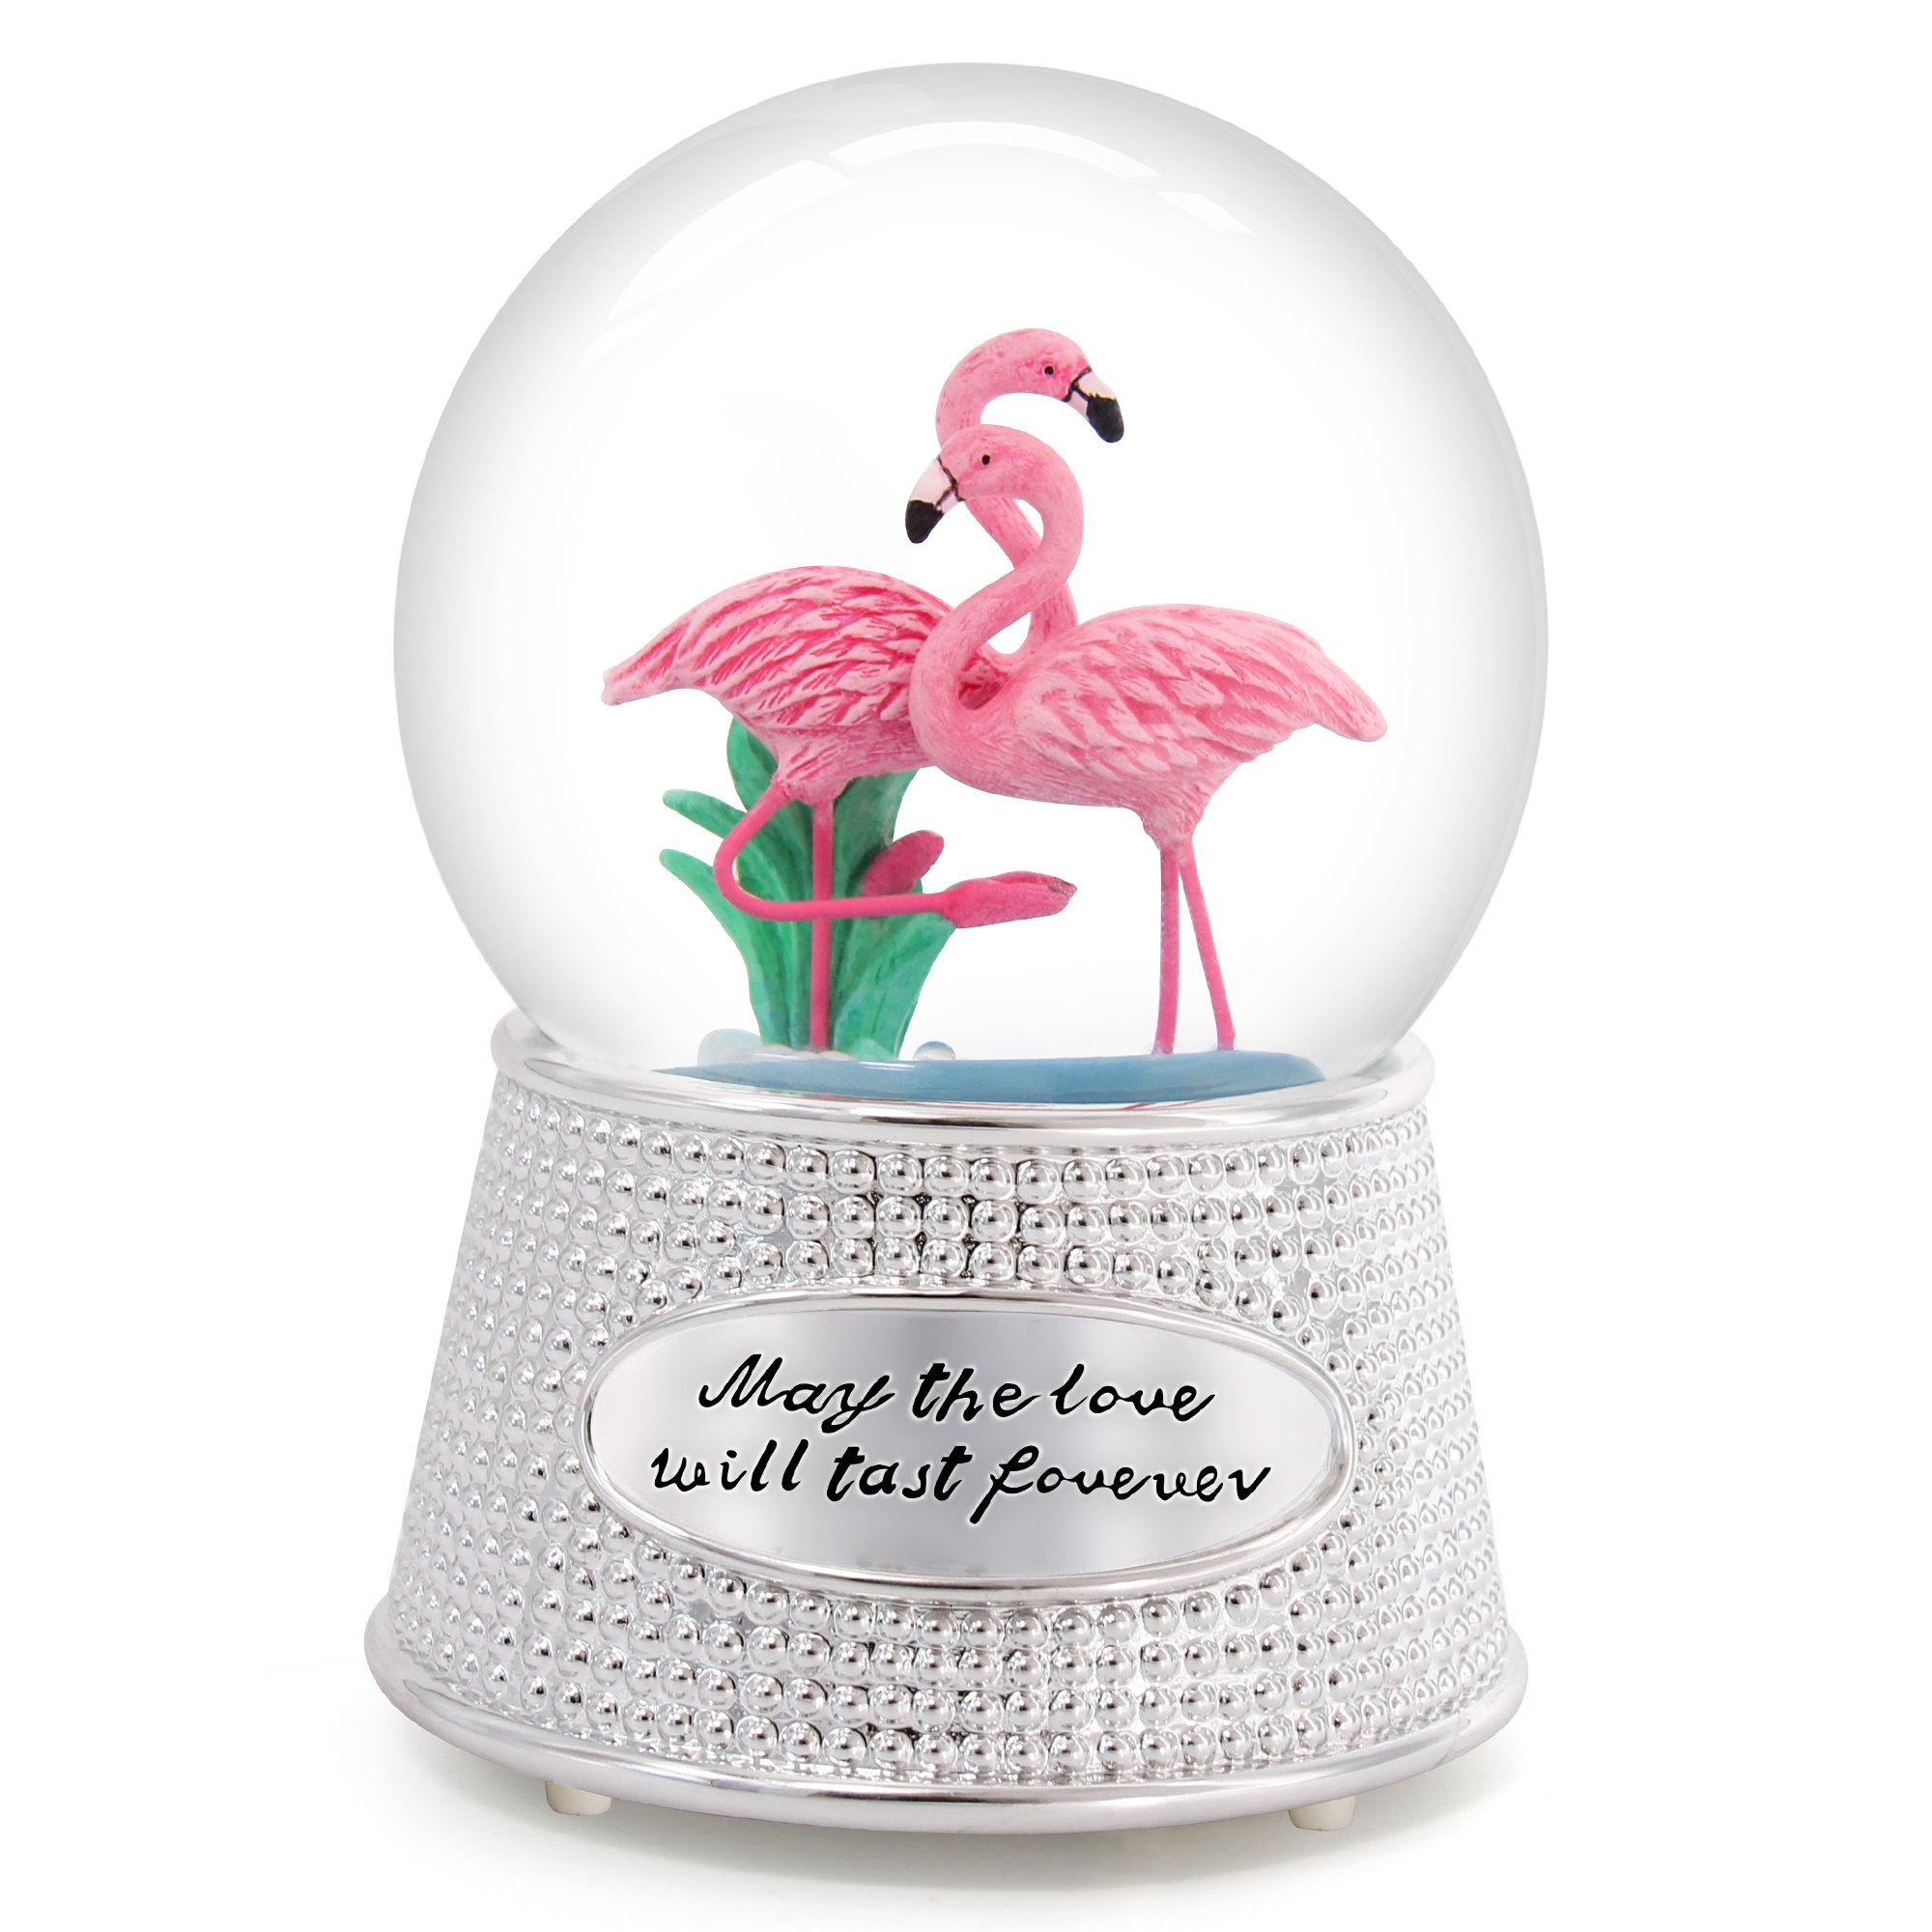 QTMY Musical Snow Globes Pink Flamingo Ornament Music Boxes with Led Light Sequins Home Decor Gift for Her Girls